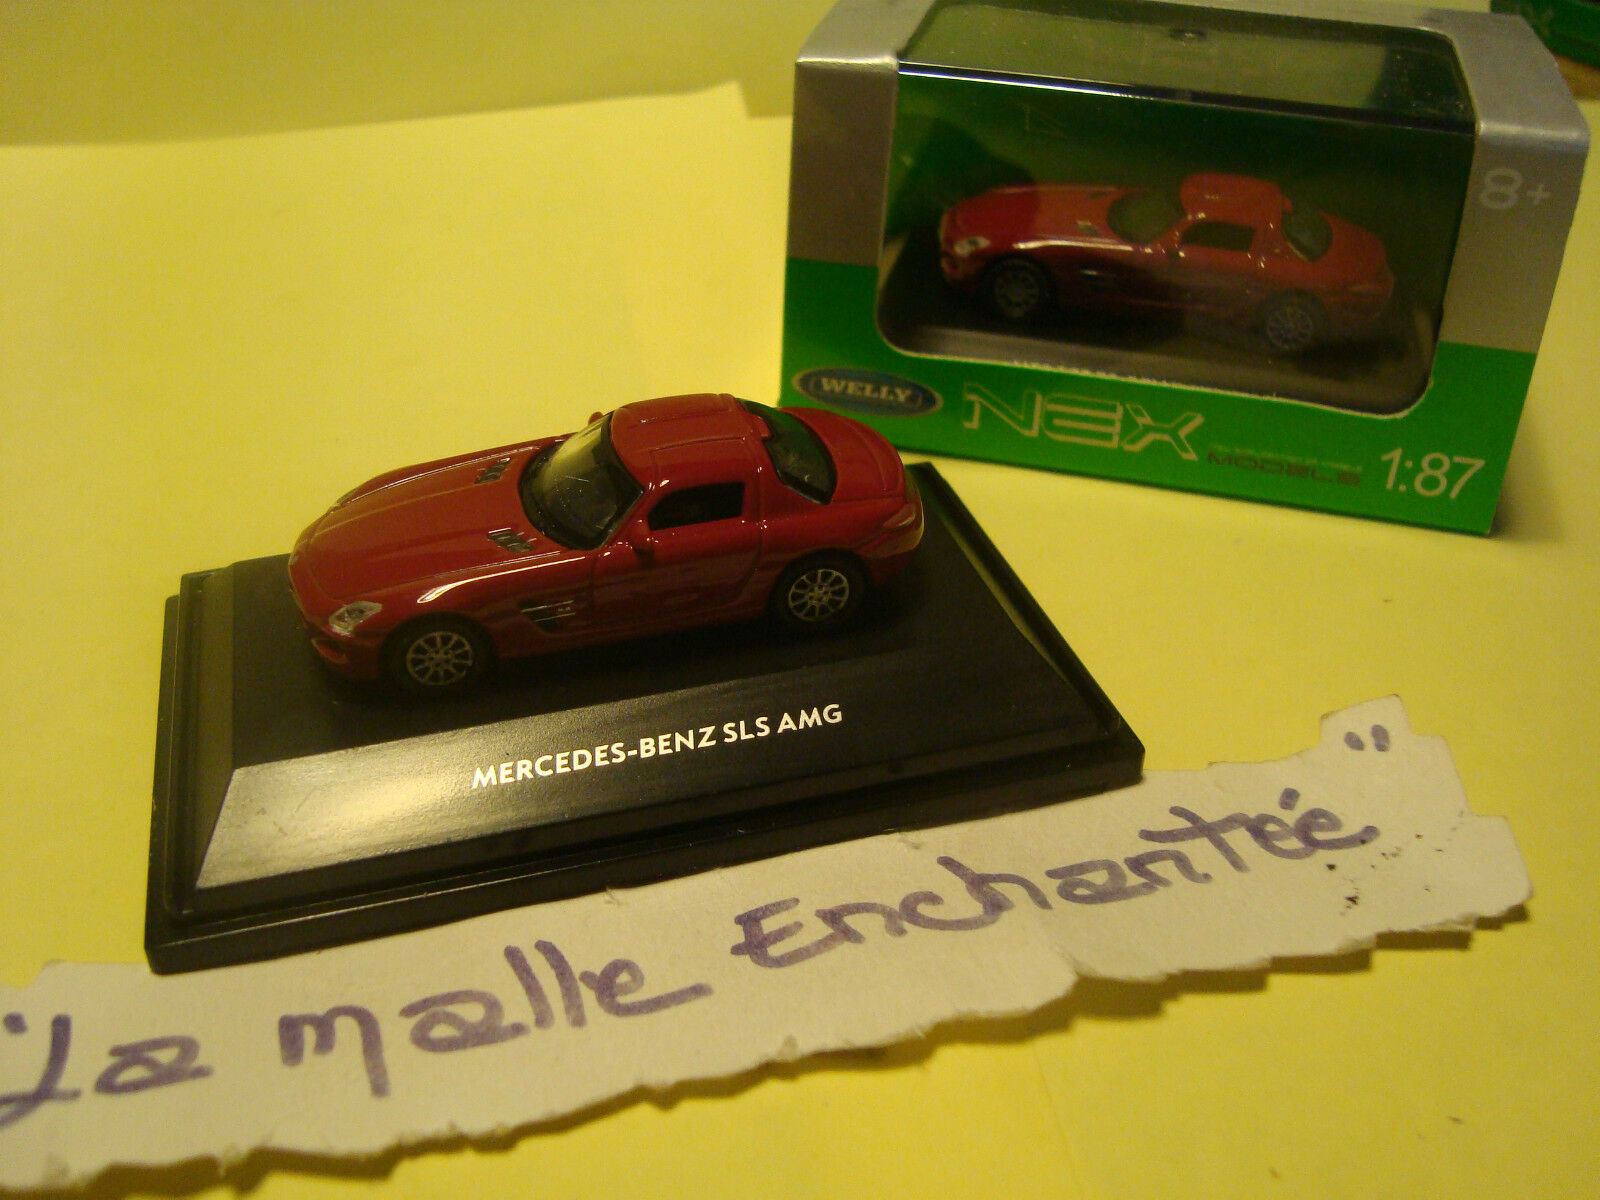 MINIATURE MODELISME FERROVIAIRE MERCEDES BENZ SLS AMG 1 87 HO WELLY 5 CM DE LONG